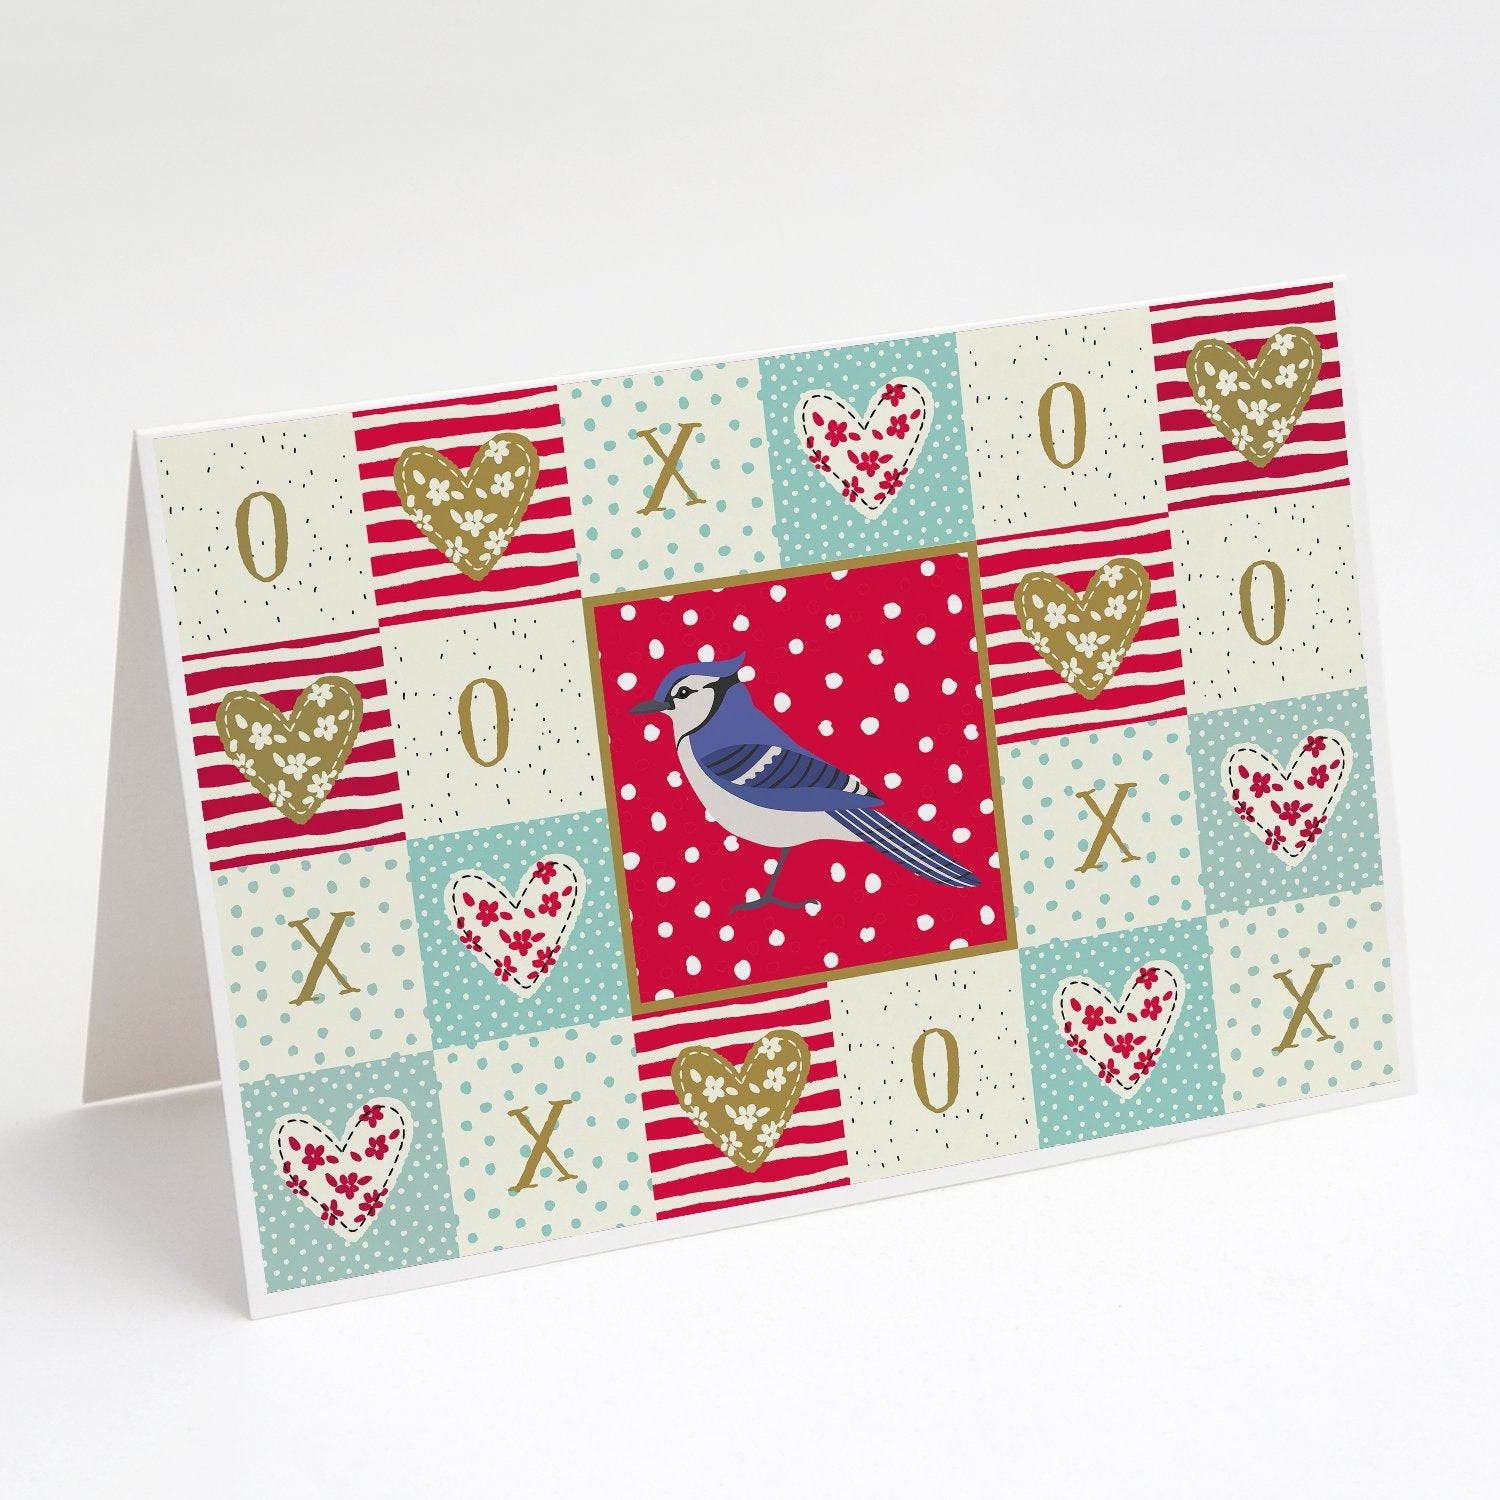 Buy this Jay Bird Love Greeting Cards and Envelopes Pack of 8